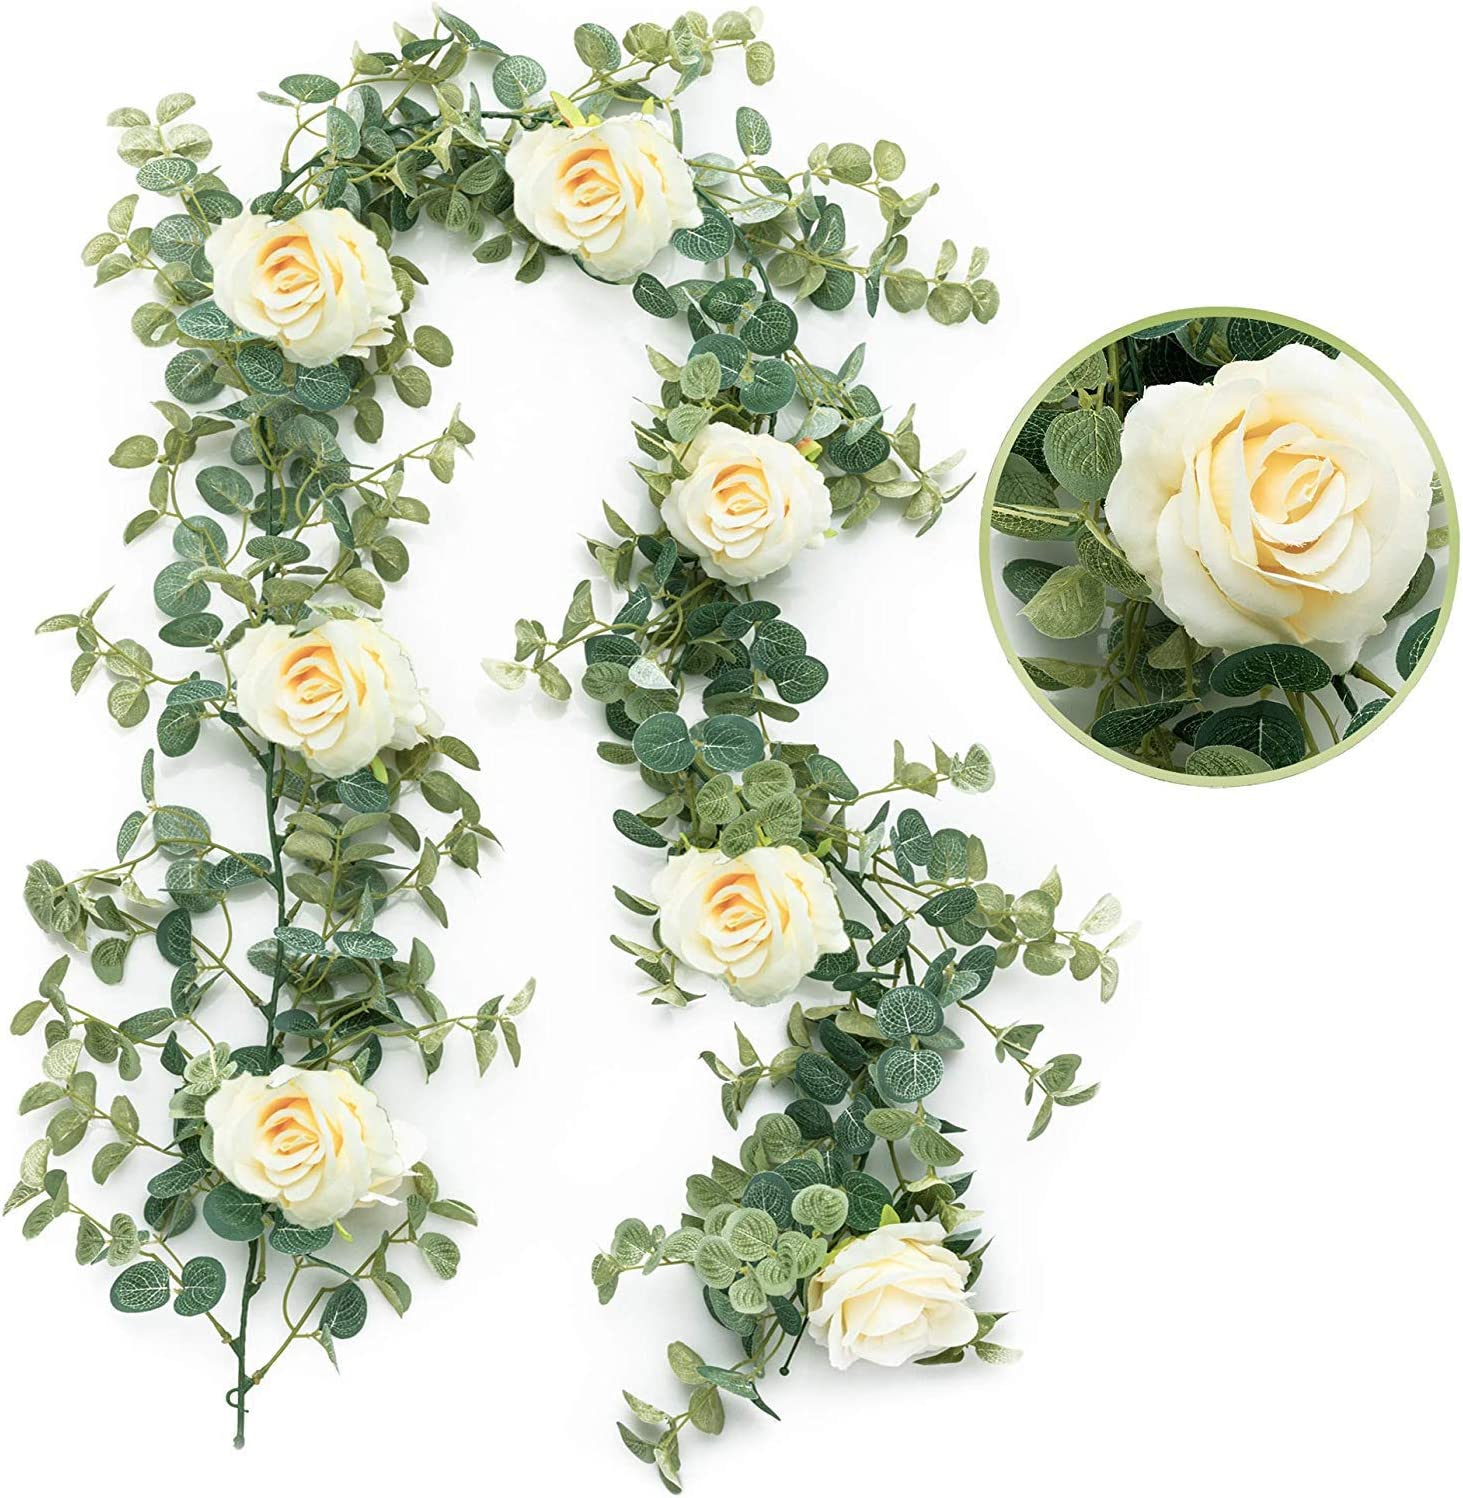 MISBEST Artificial Eucalyptus Garland with 7 Heads Rose Silk Eucalyptus Leaves Rattan Greenery Rose Flower Garland Hanging for Wedding Arch Backdrop Wall Decor Arch Wall Flower Table Runner Decoration